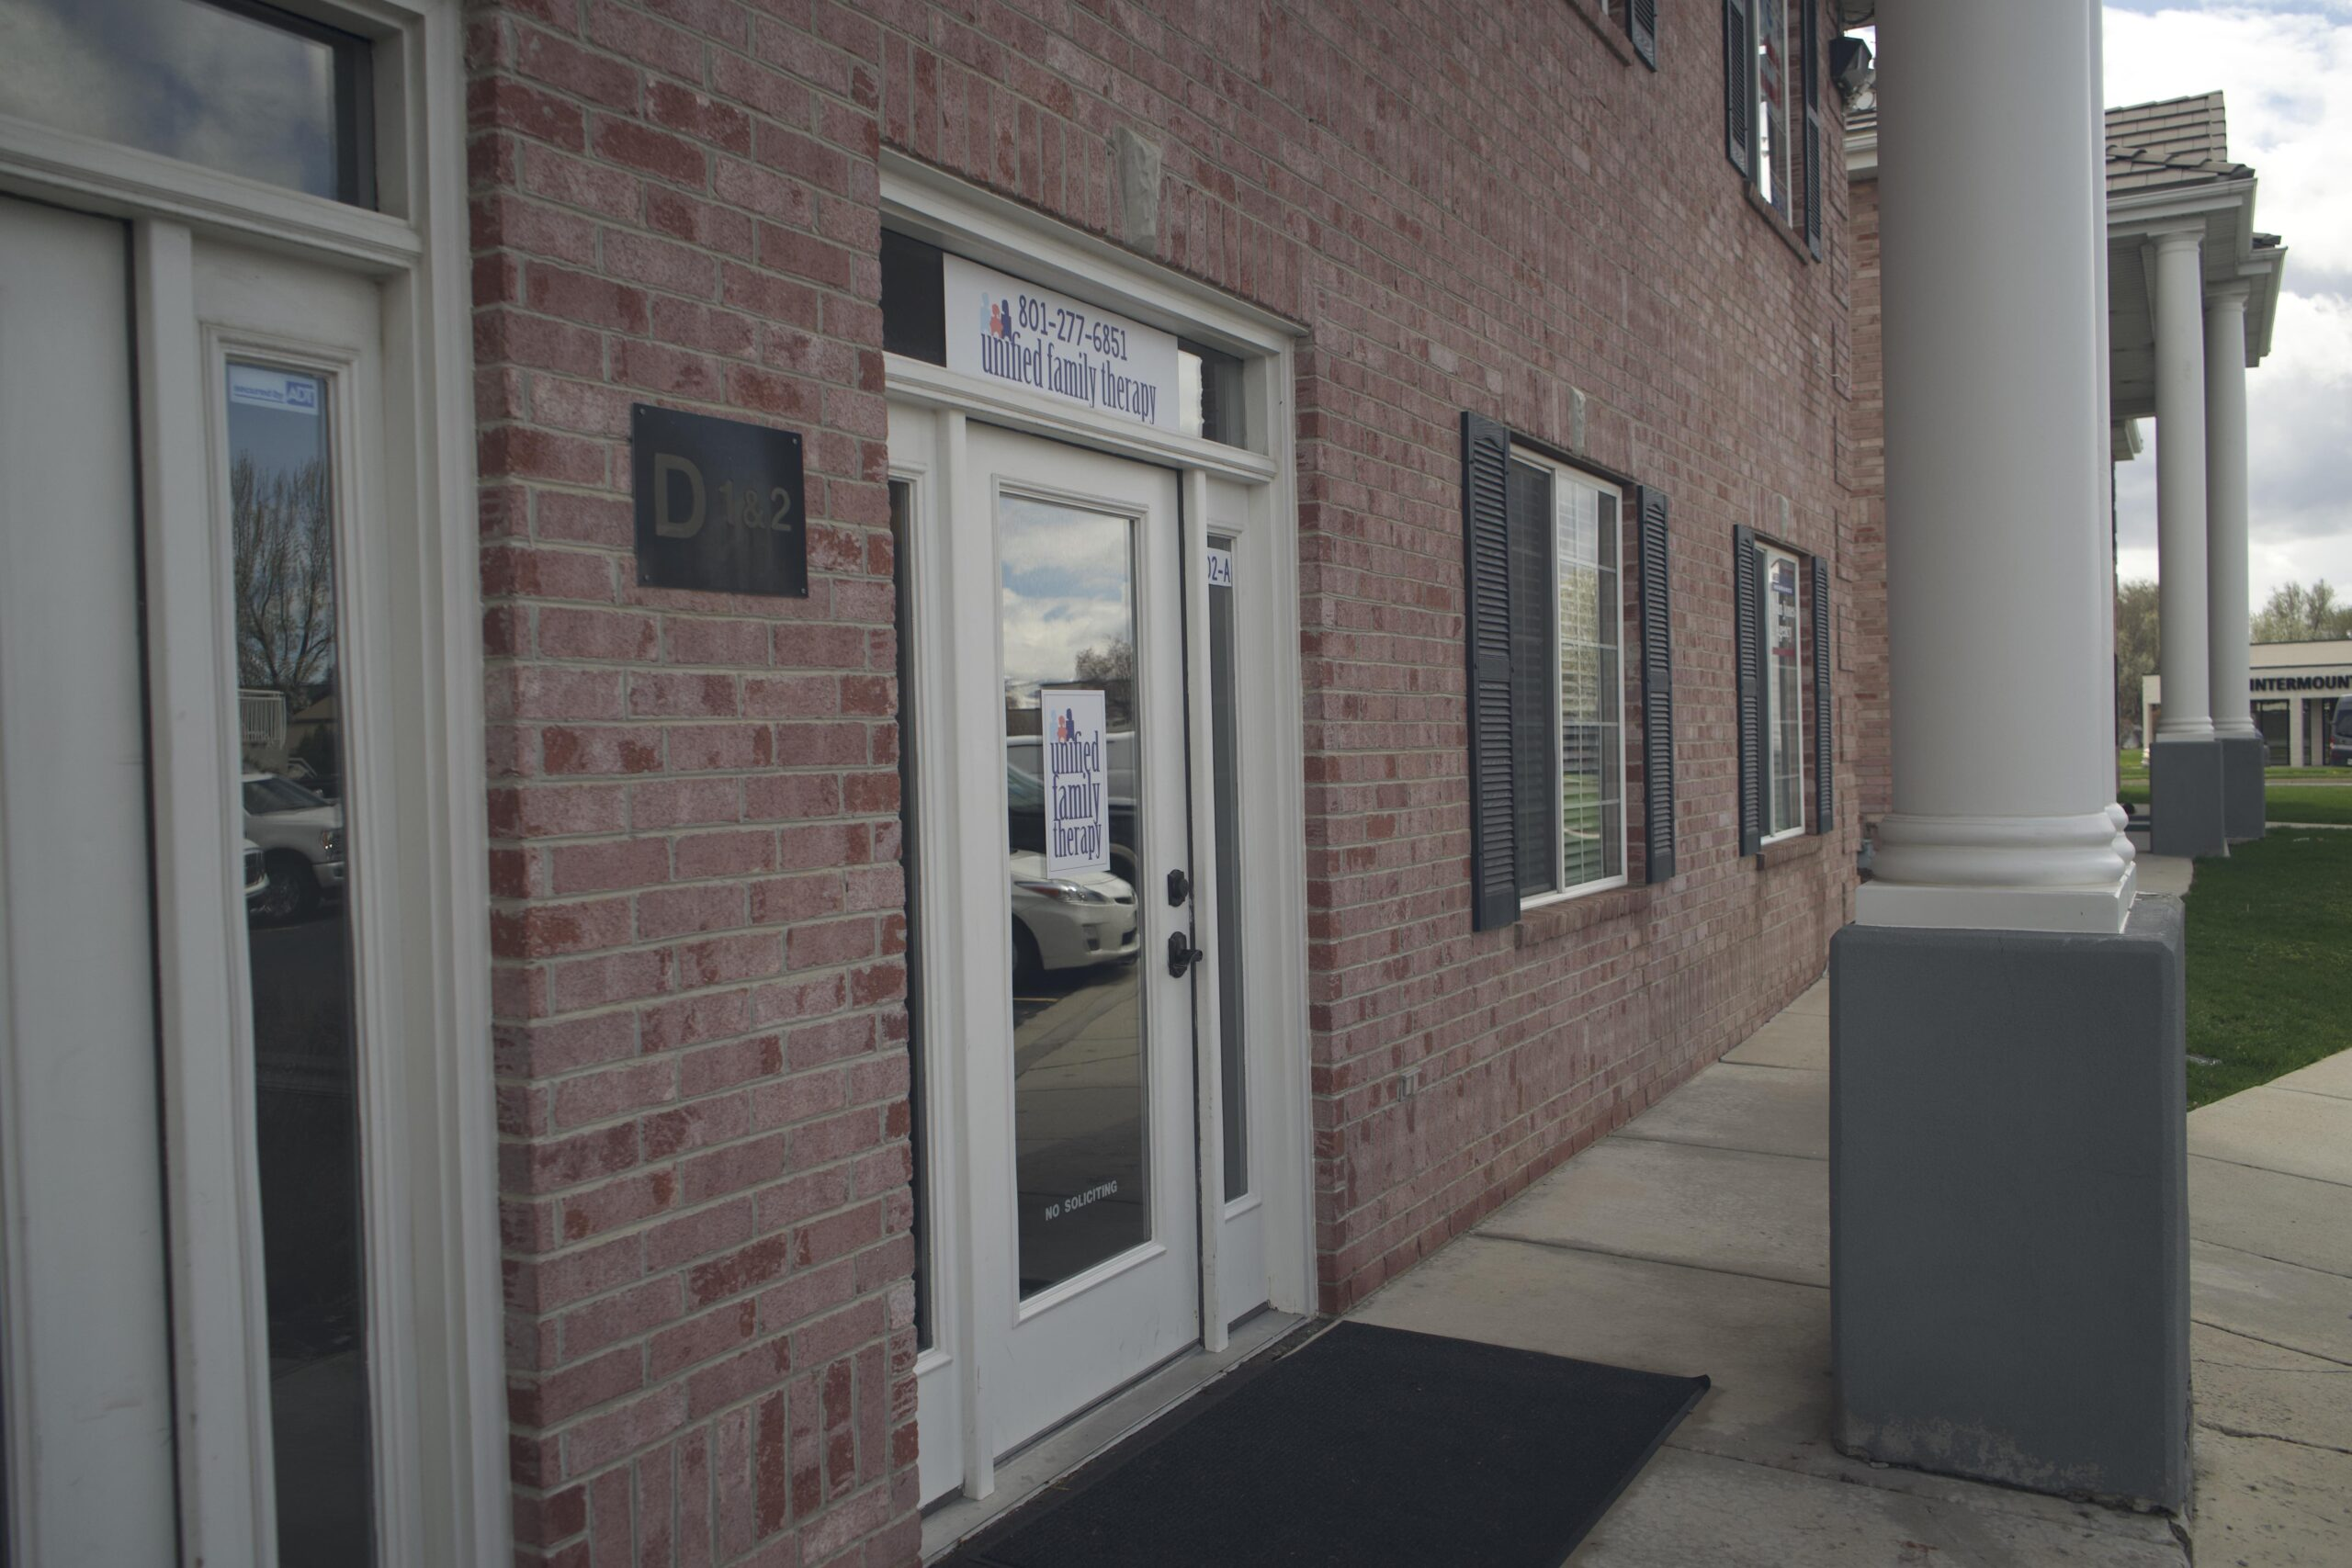 Unified Family Therapy Front Entrance.